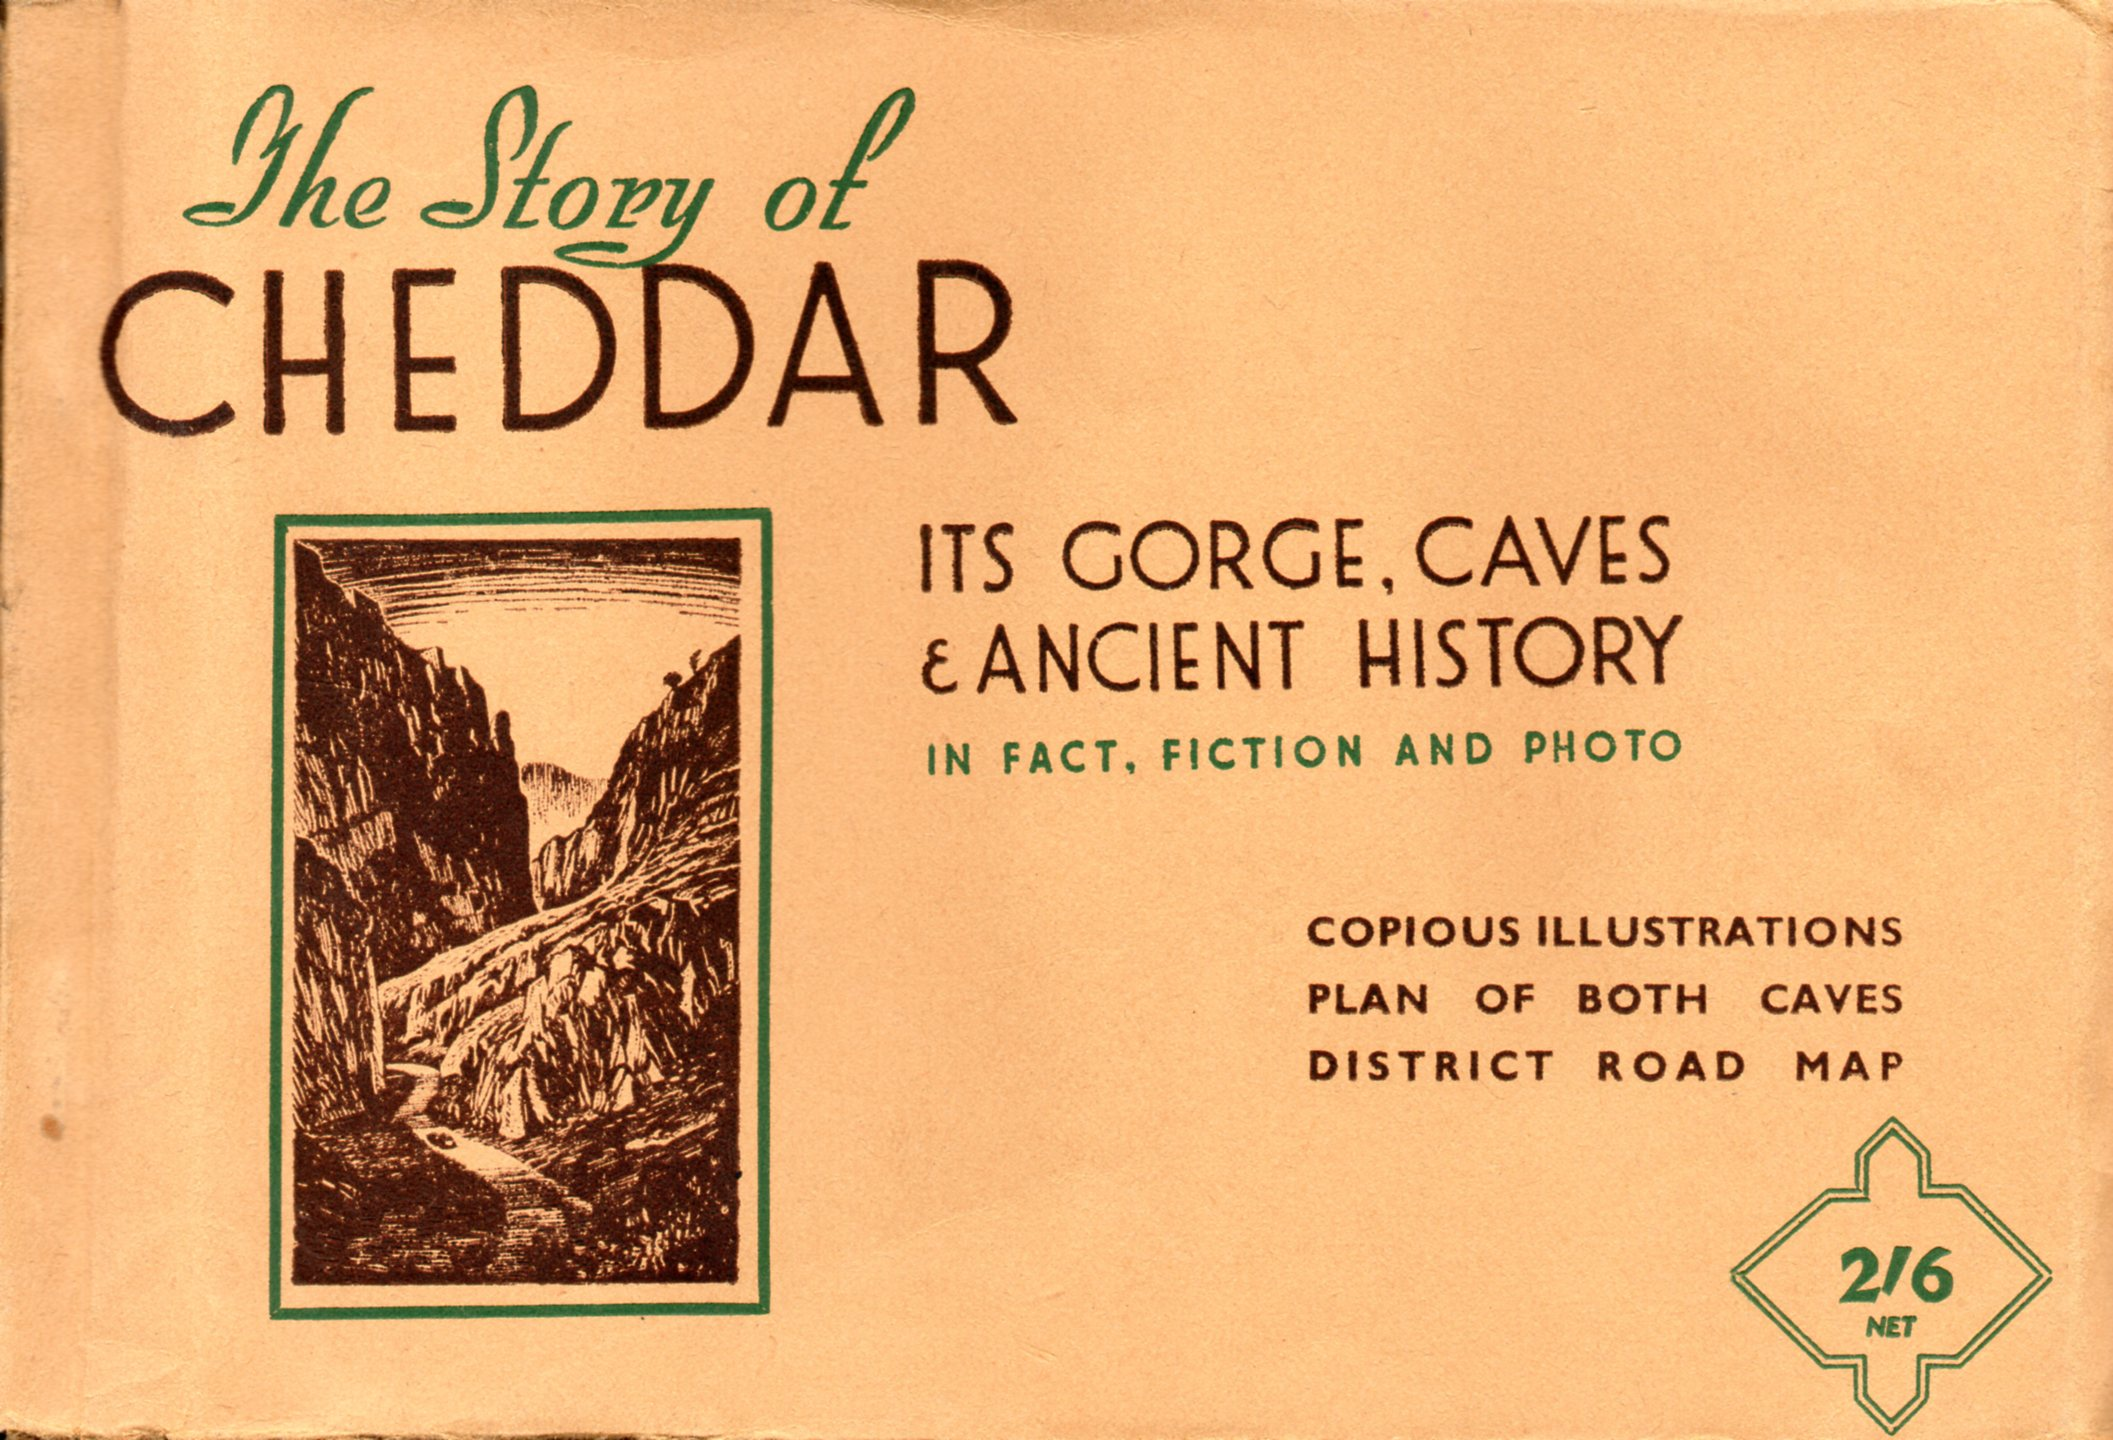 [USED] The Story Of Cheddar Its Gorge Caves & Ancient History In Fact Fiction And Photo , Copious illustrations plan of both caves District Road Map